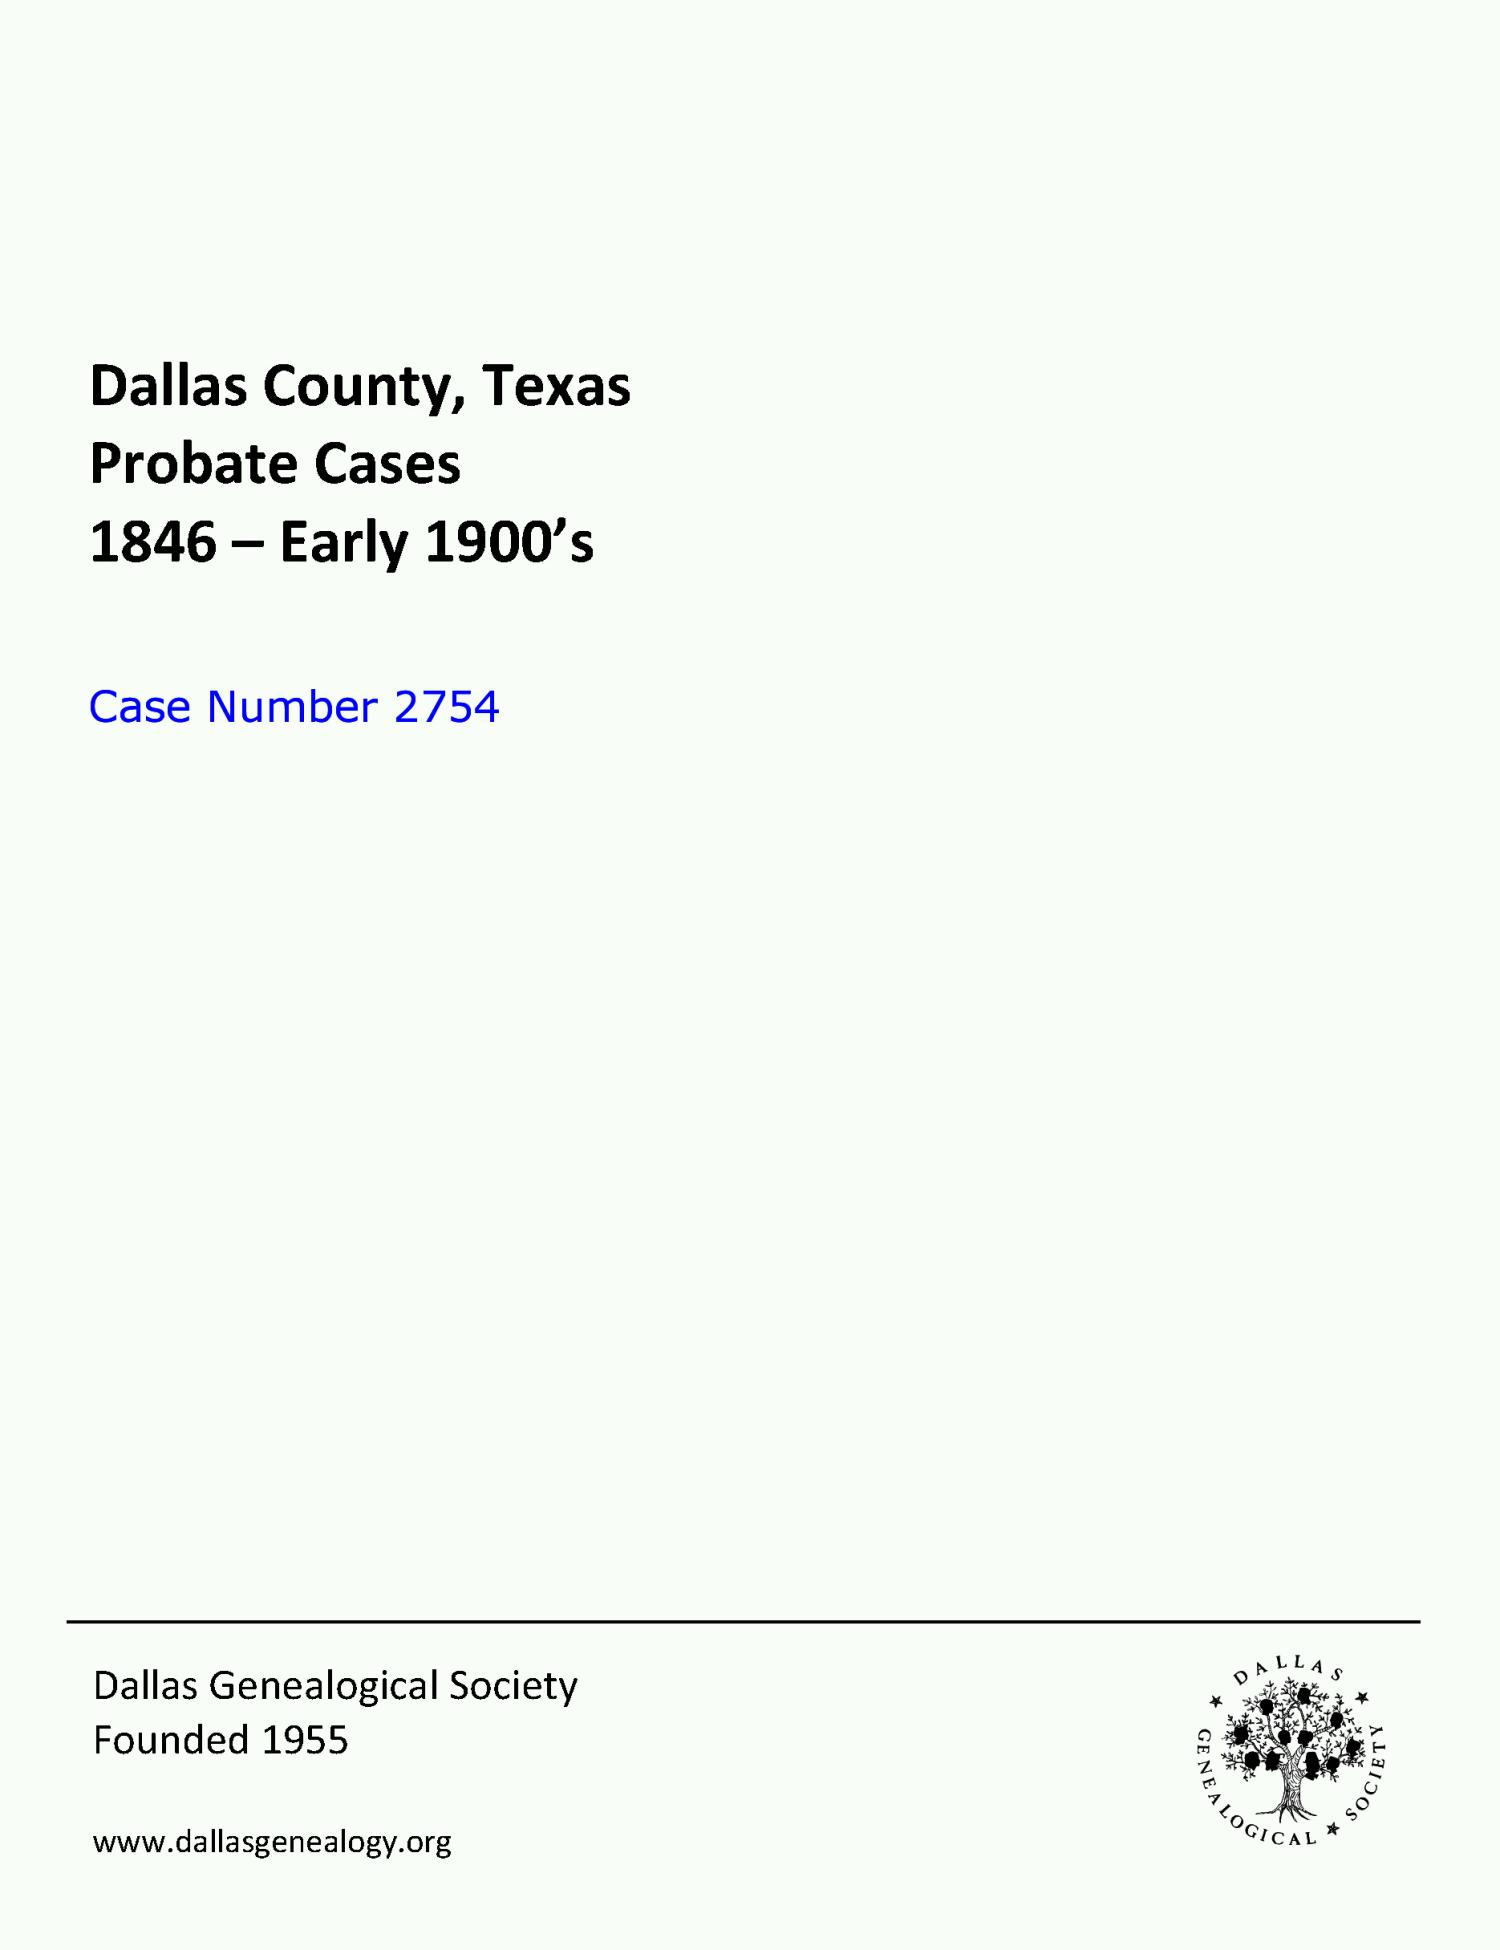 Dallas County Probate Case 2754: Simpson, Margaret A. (Minor)                                                                                                      [Sequence #]: 1 of 21